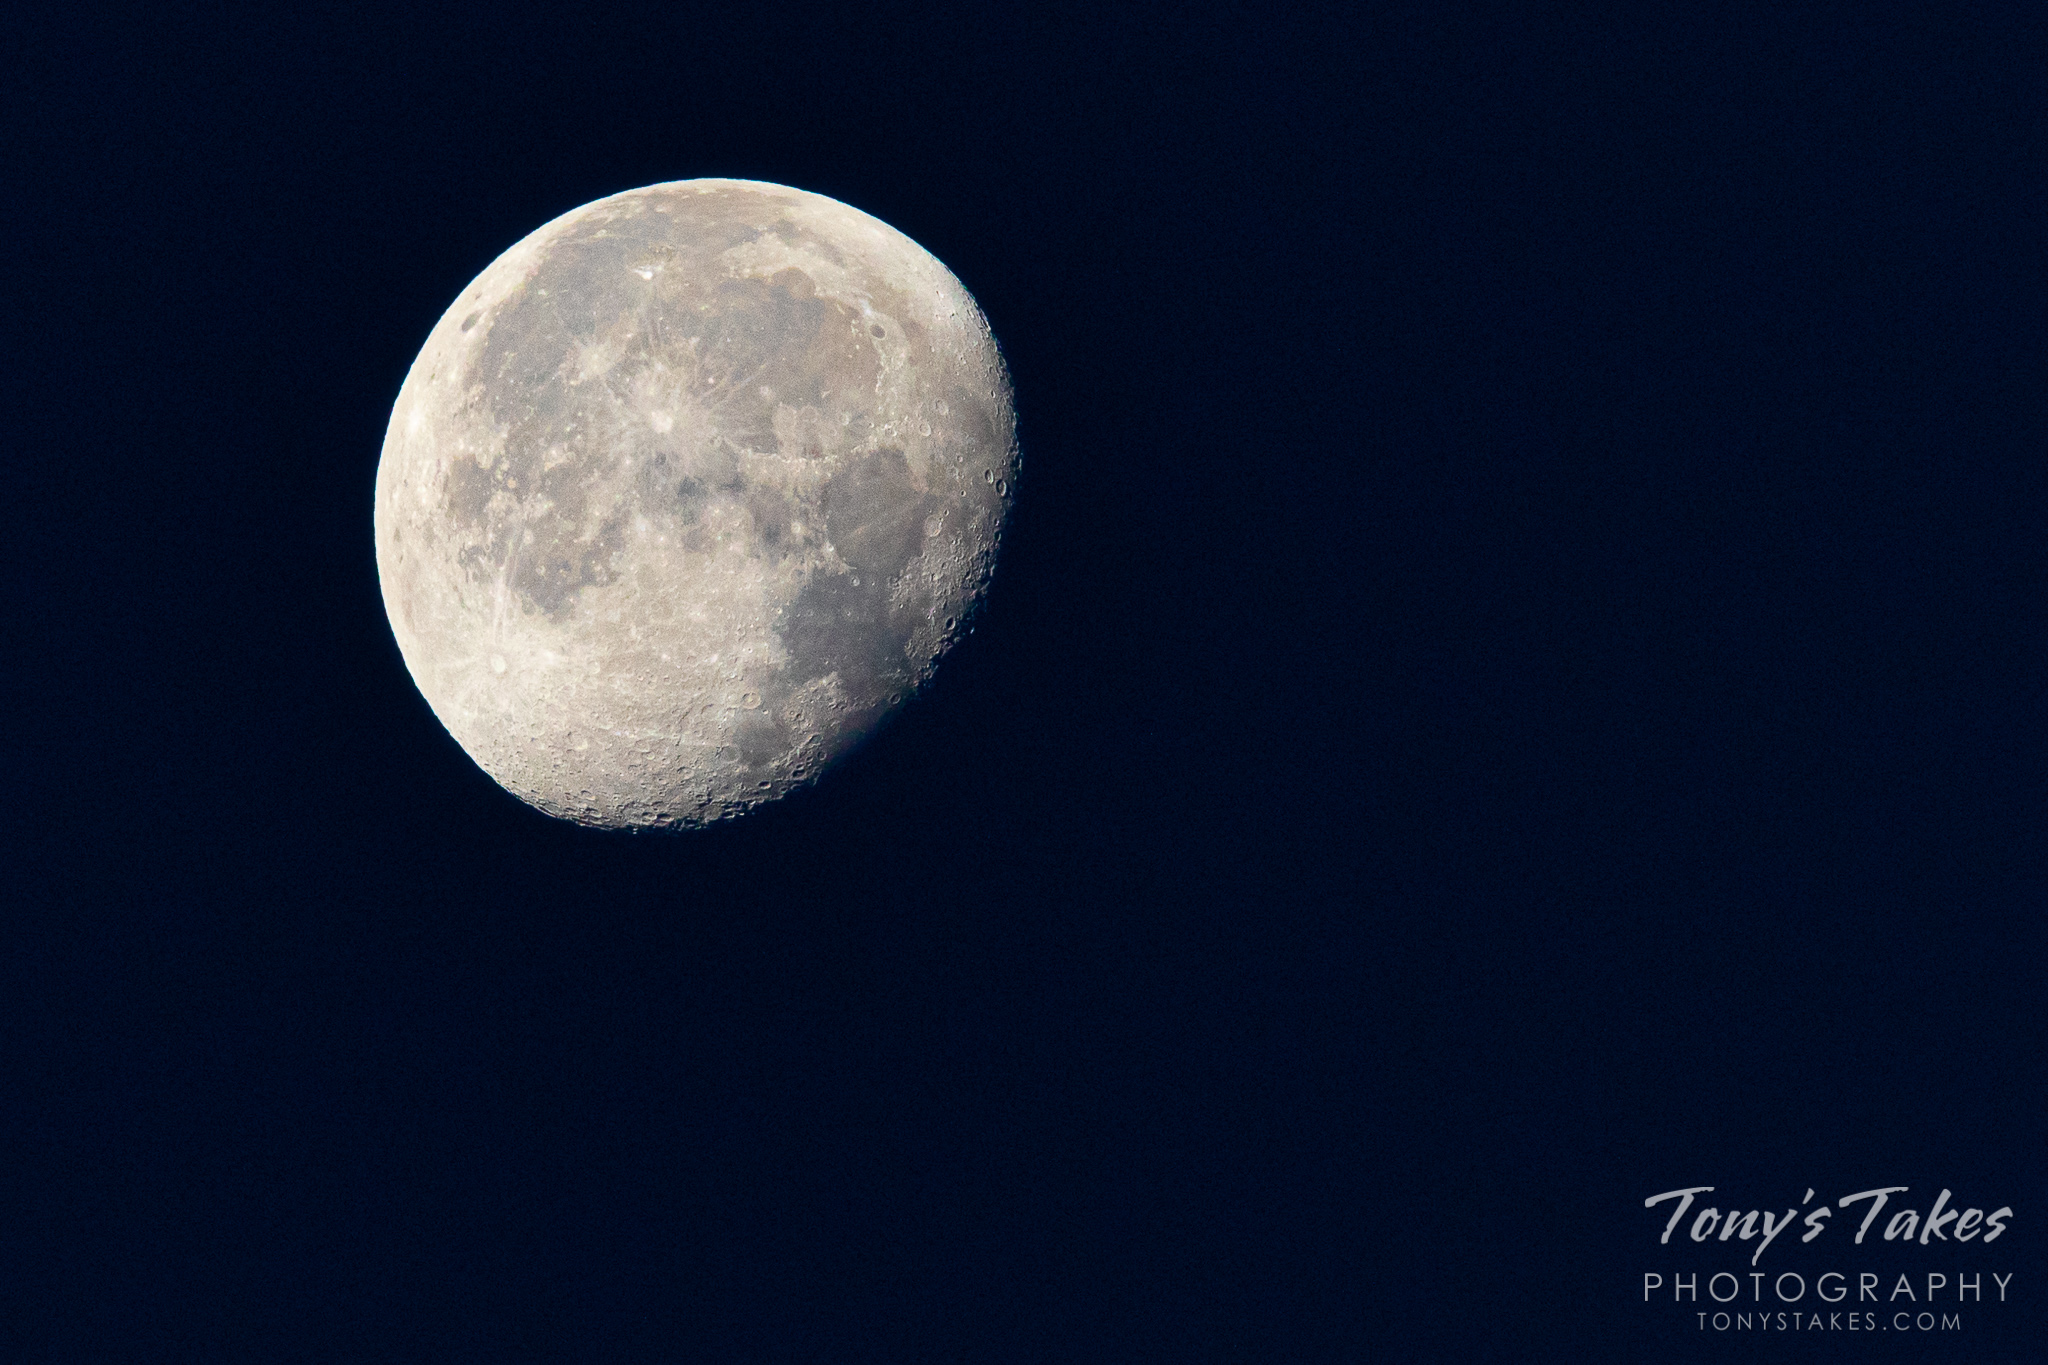 The moon on the 50th anniversary of the Apollo 11 landing. (© Tony's Takes)